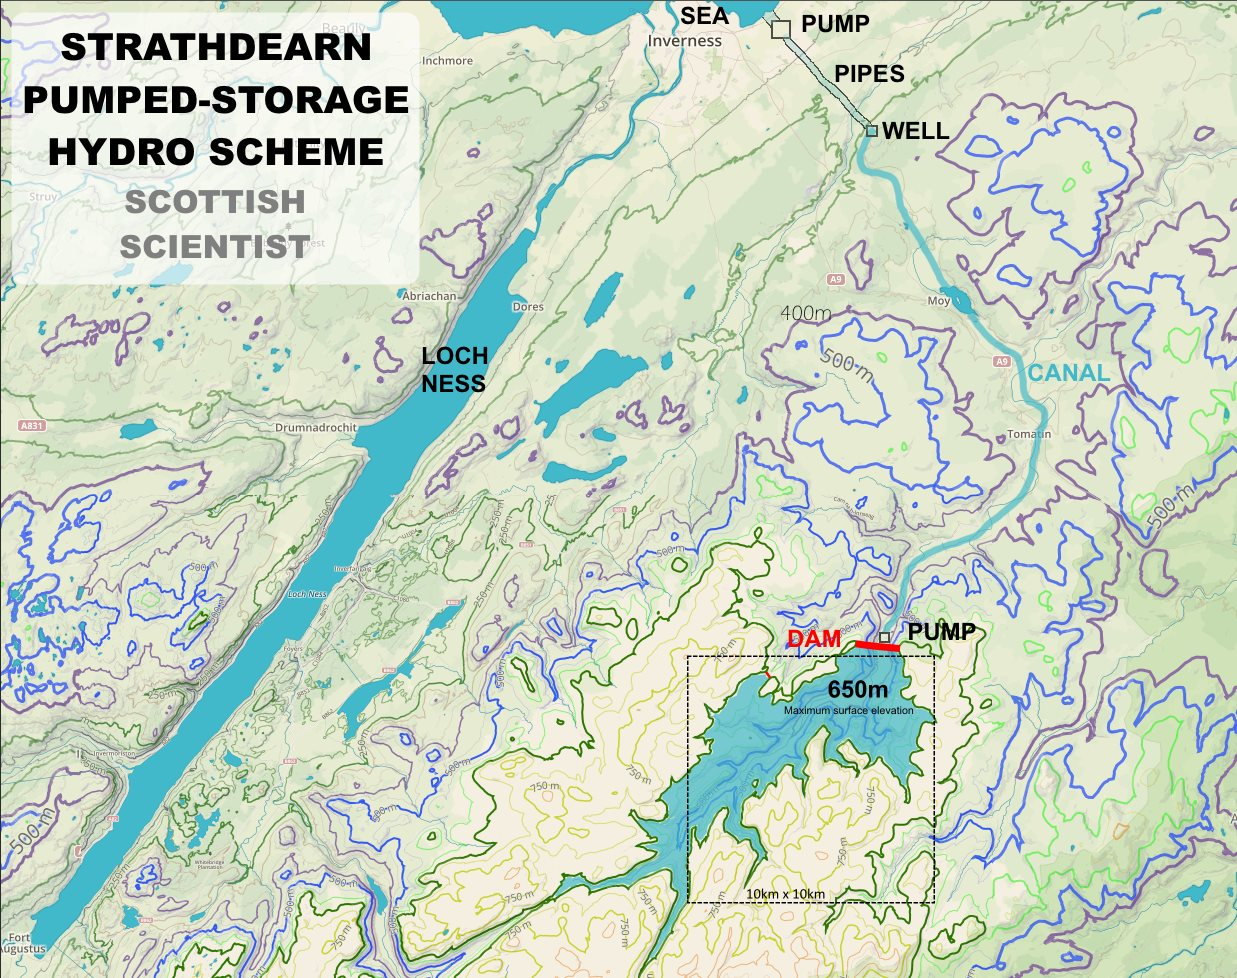 strathdearn_pumped-storage1